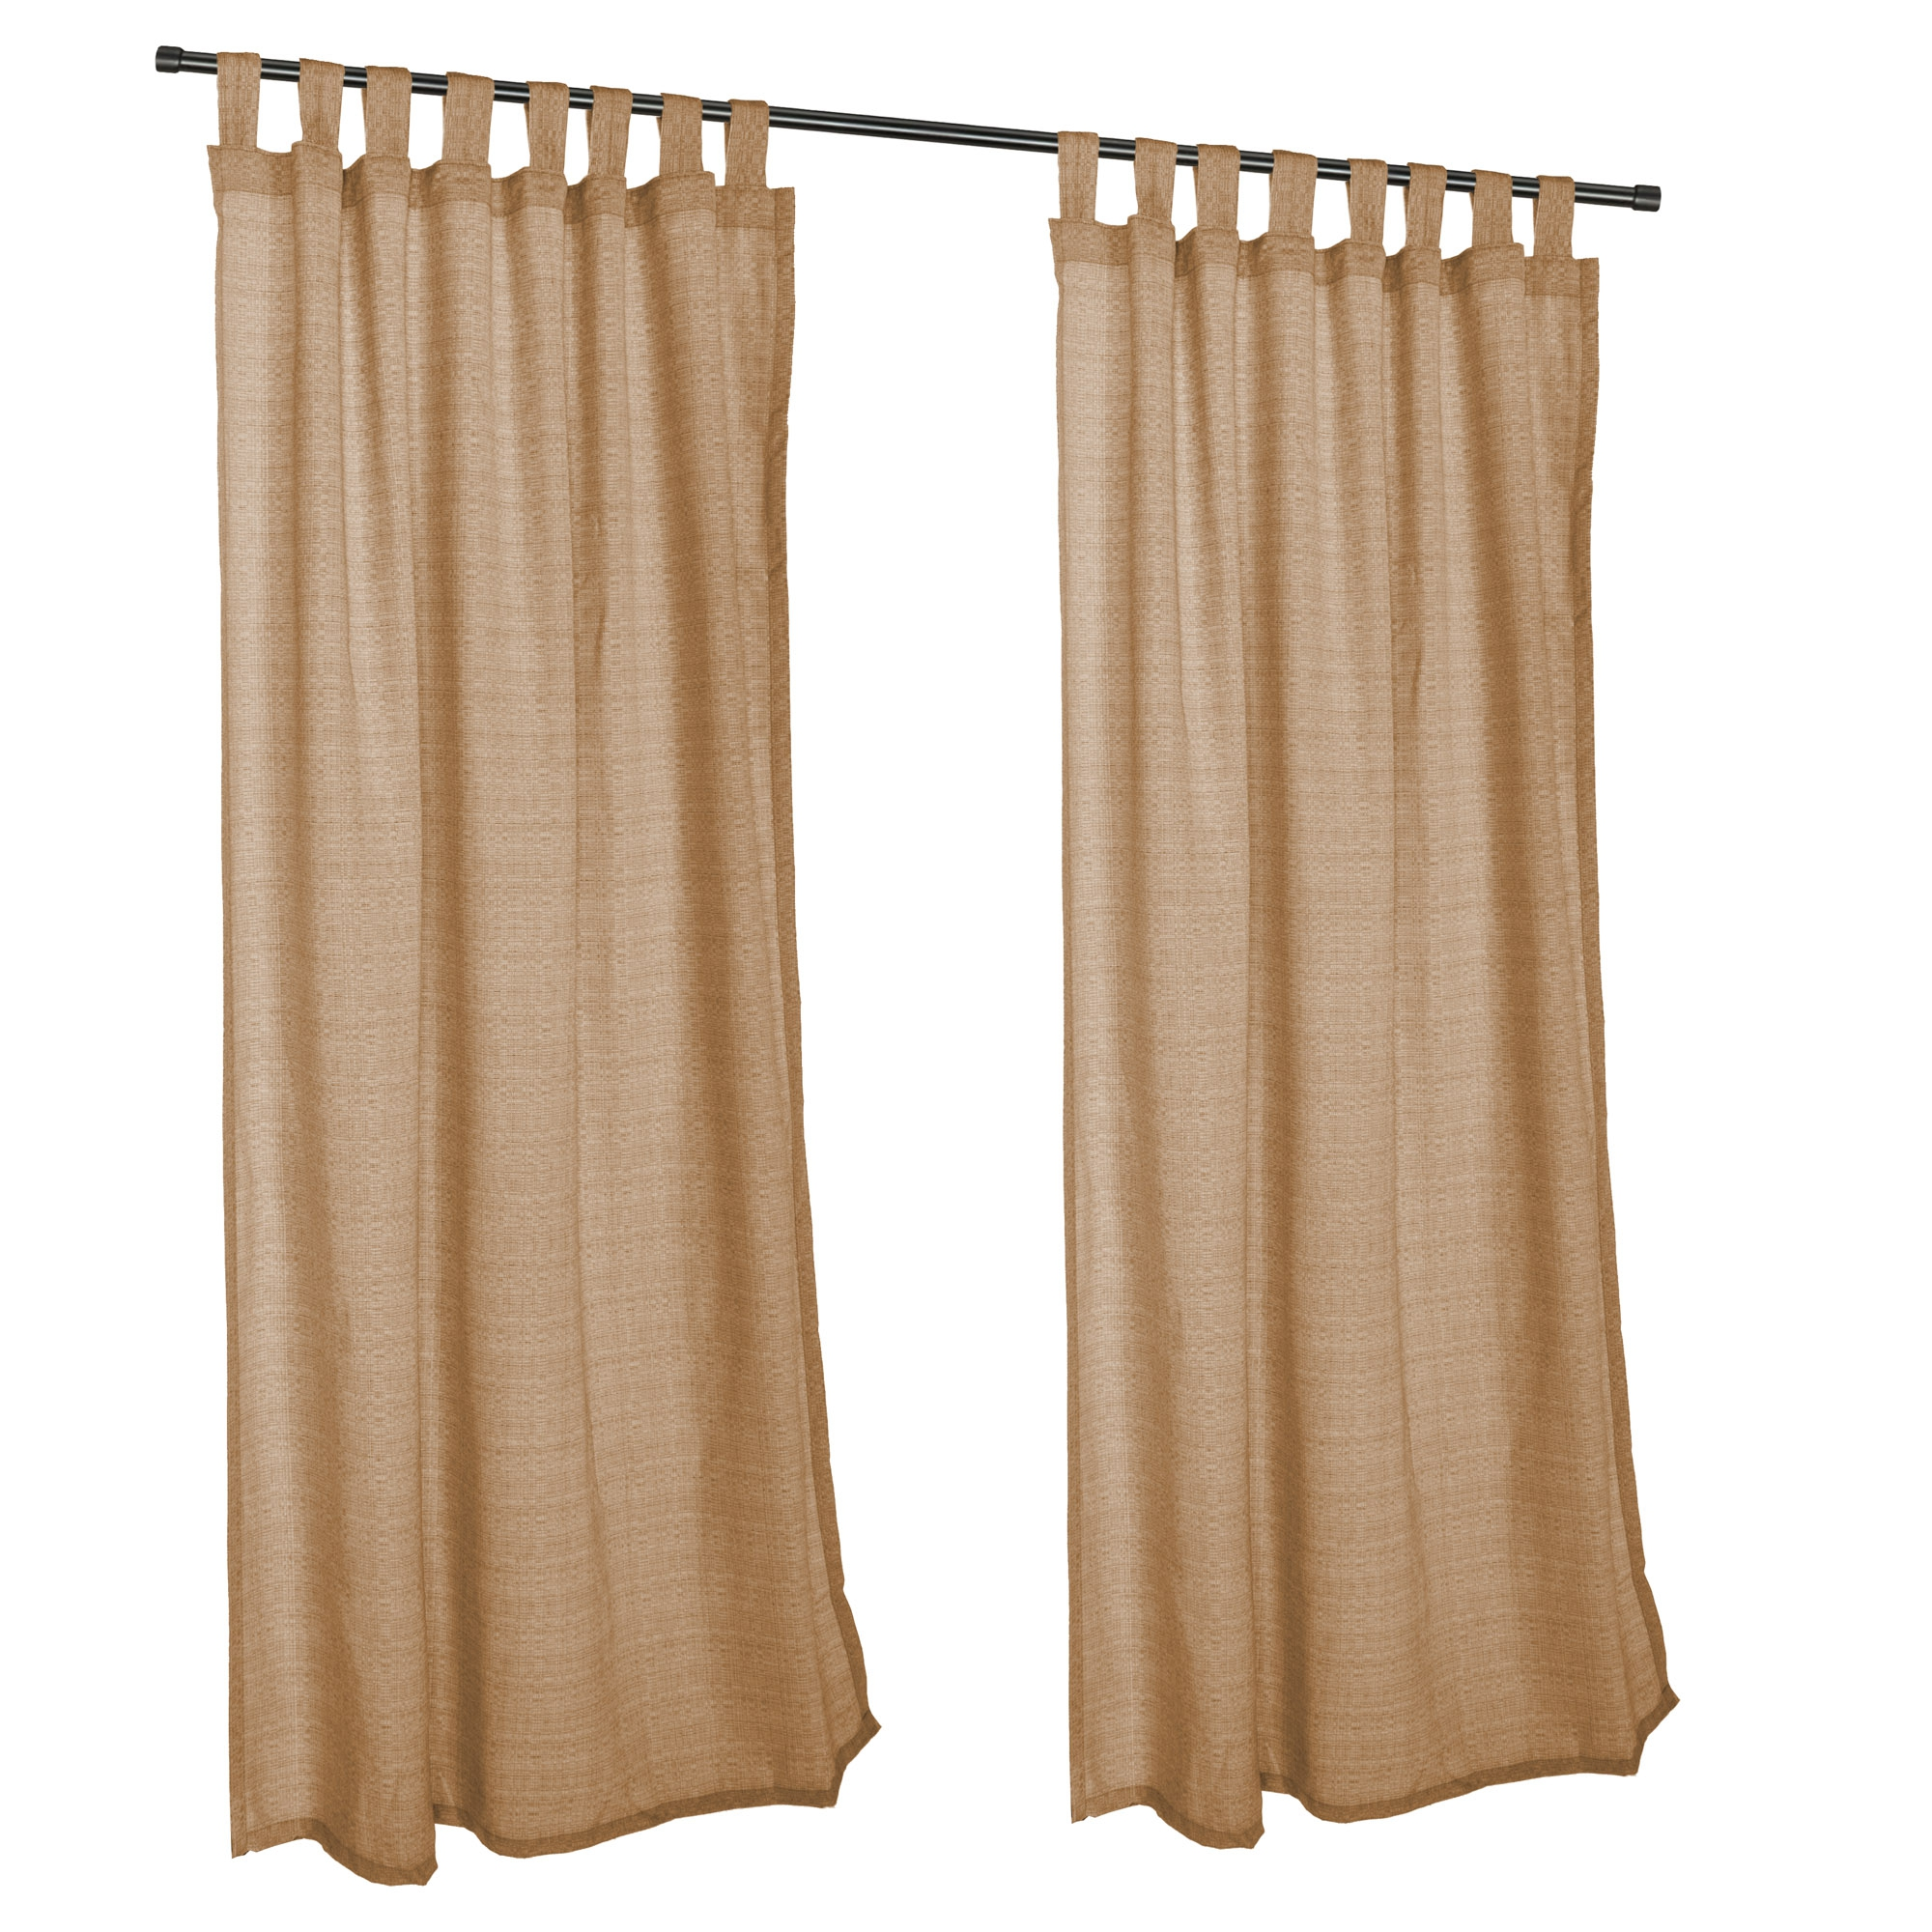 Sunbrella Curtains | Lowes Outdoor Drapes | Sunbrella Drapes Outdoor Panels